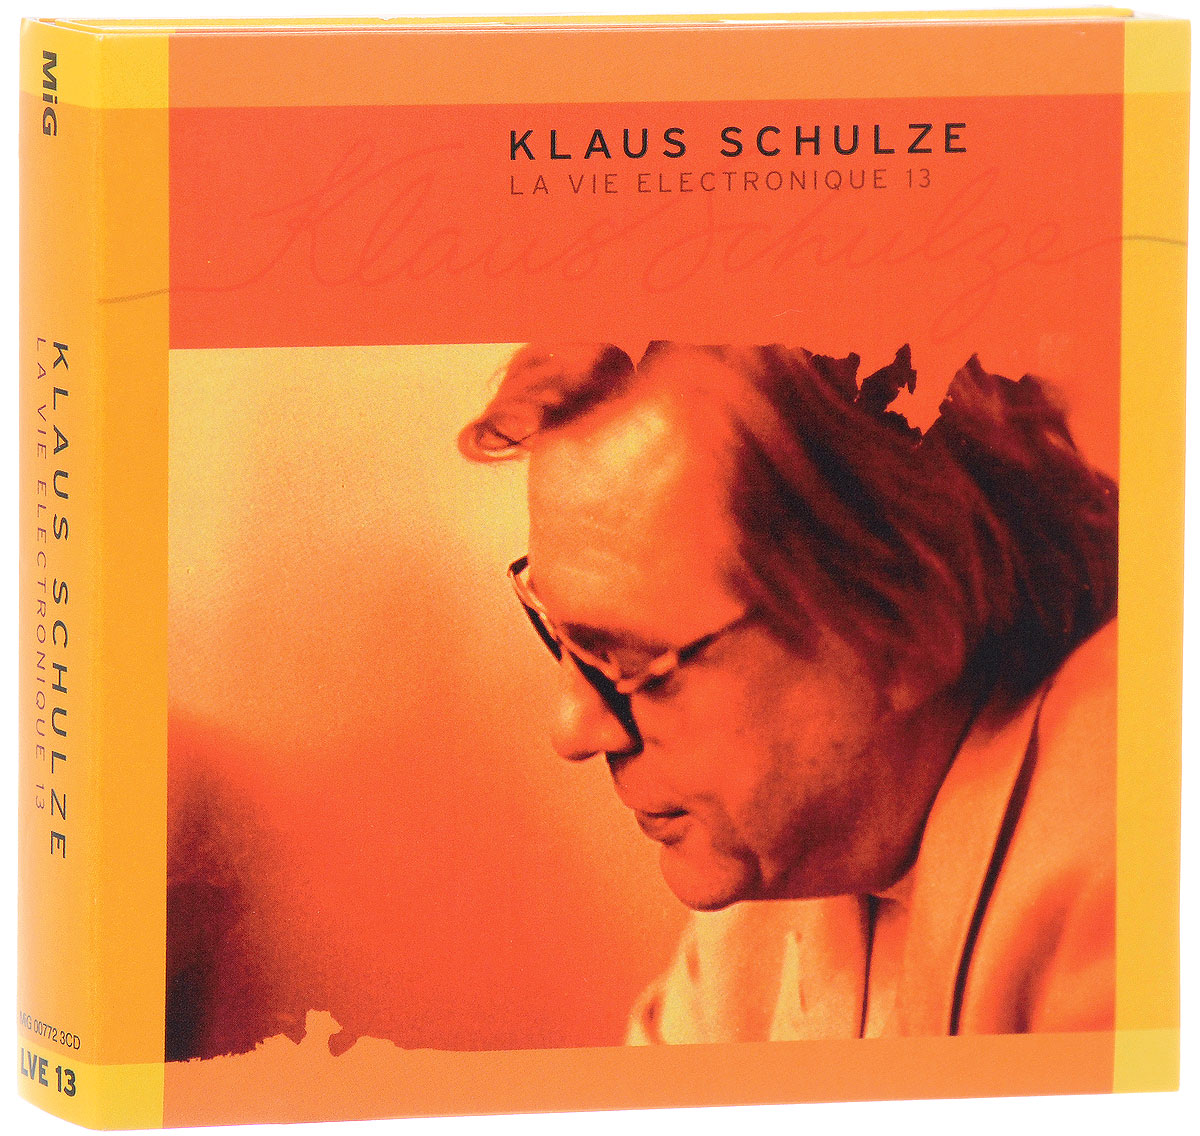 Клаус Шульце Klaus Schulze. La Vie Electronique 13 (3 CD) клаус шульце klaus schulze la vie electronique 11 3 cd